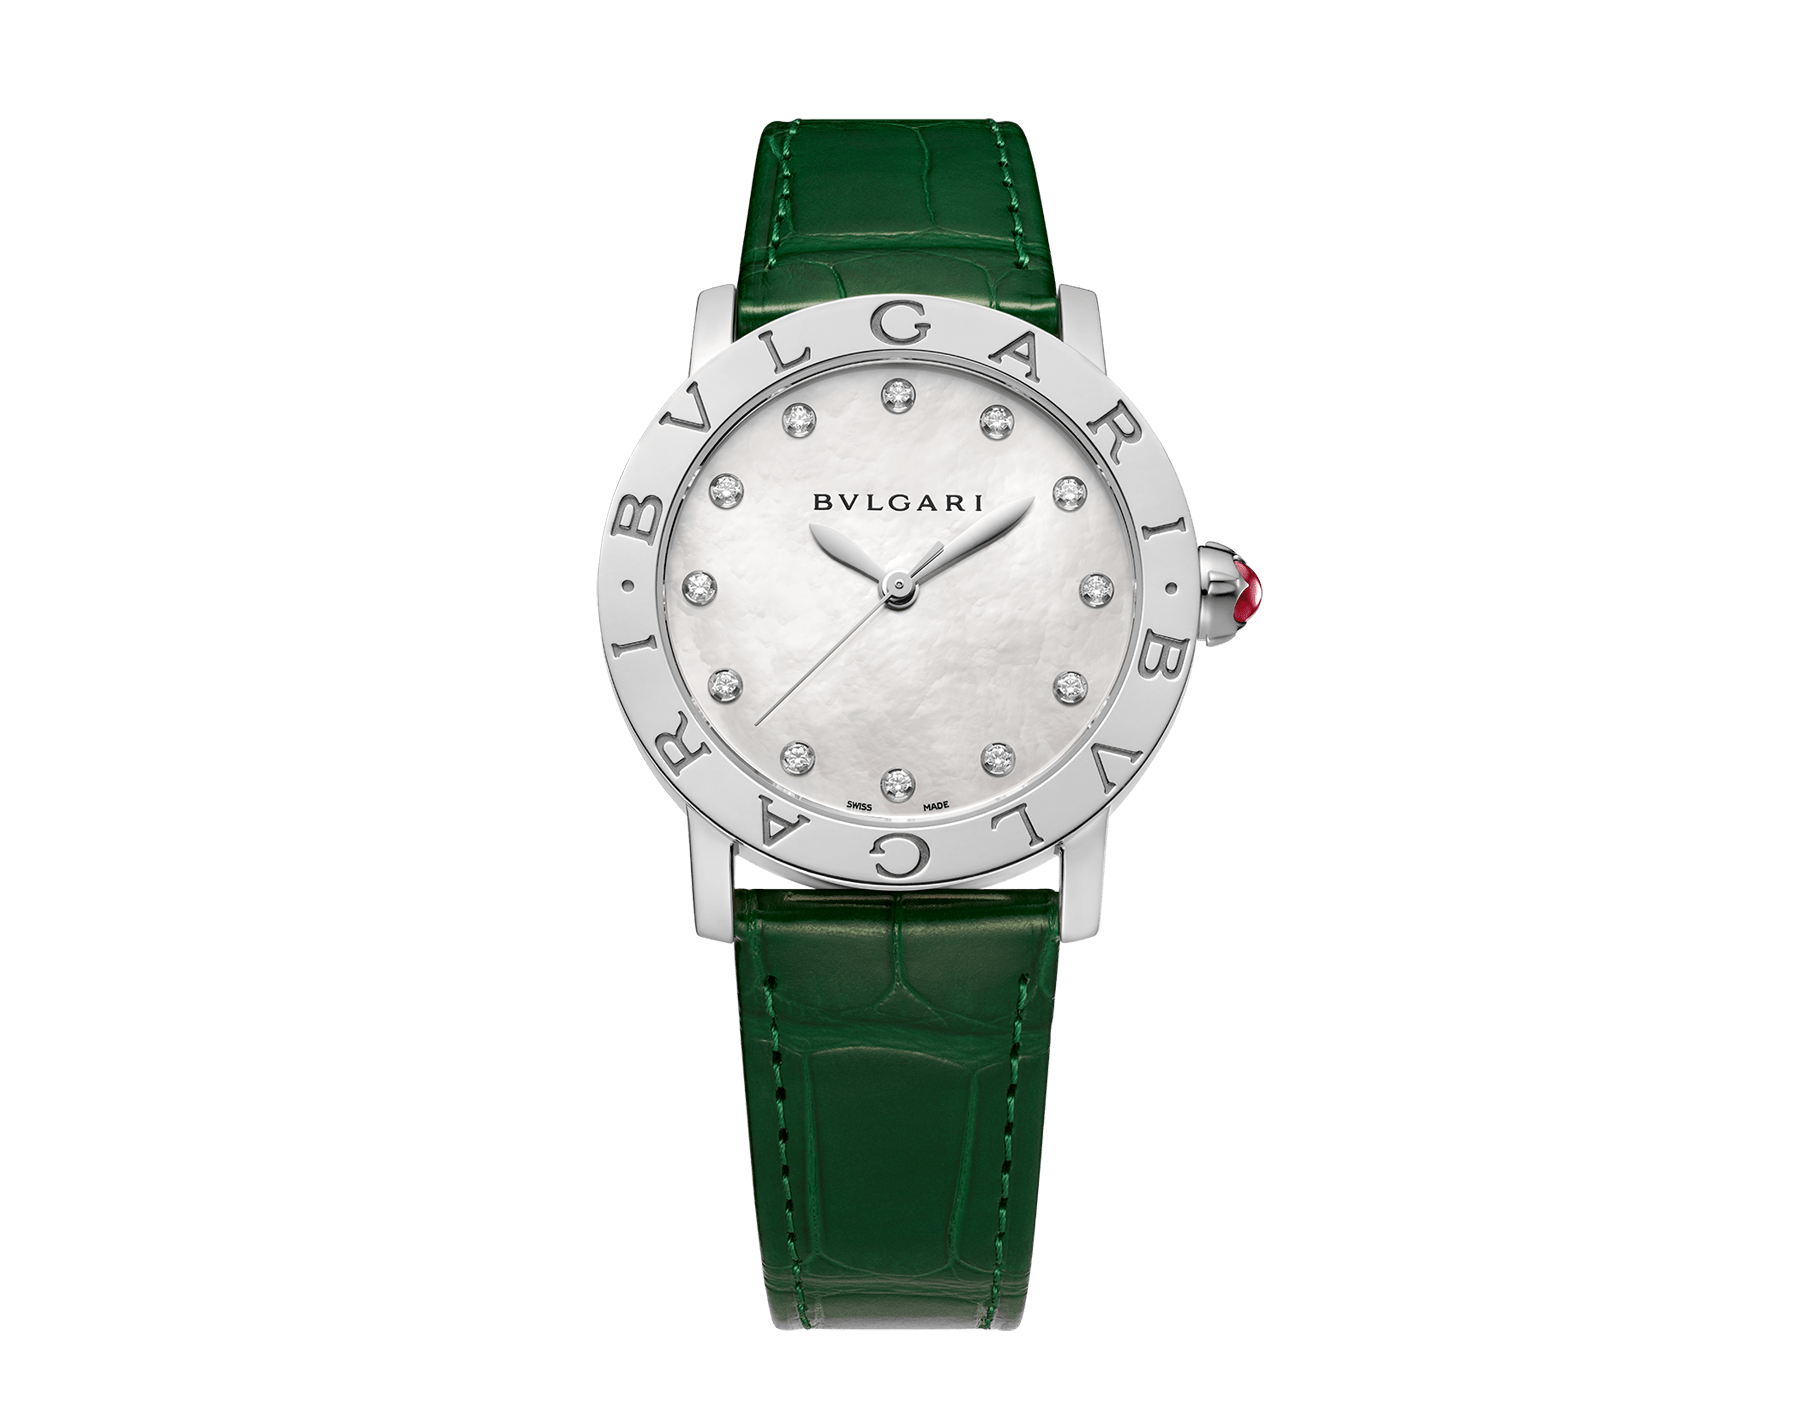 BVLGARI BVLGARI watch with stainless steel case, white mother-of-pearl dial, diamond indexes and shiny green alligator bracelet 102746 image 1